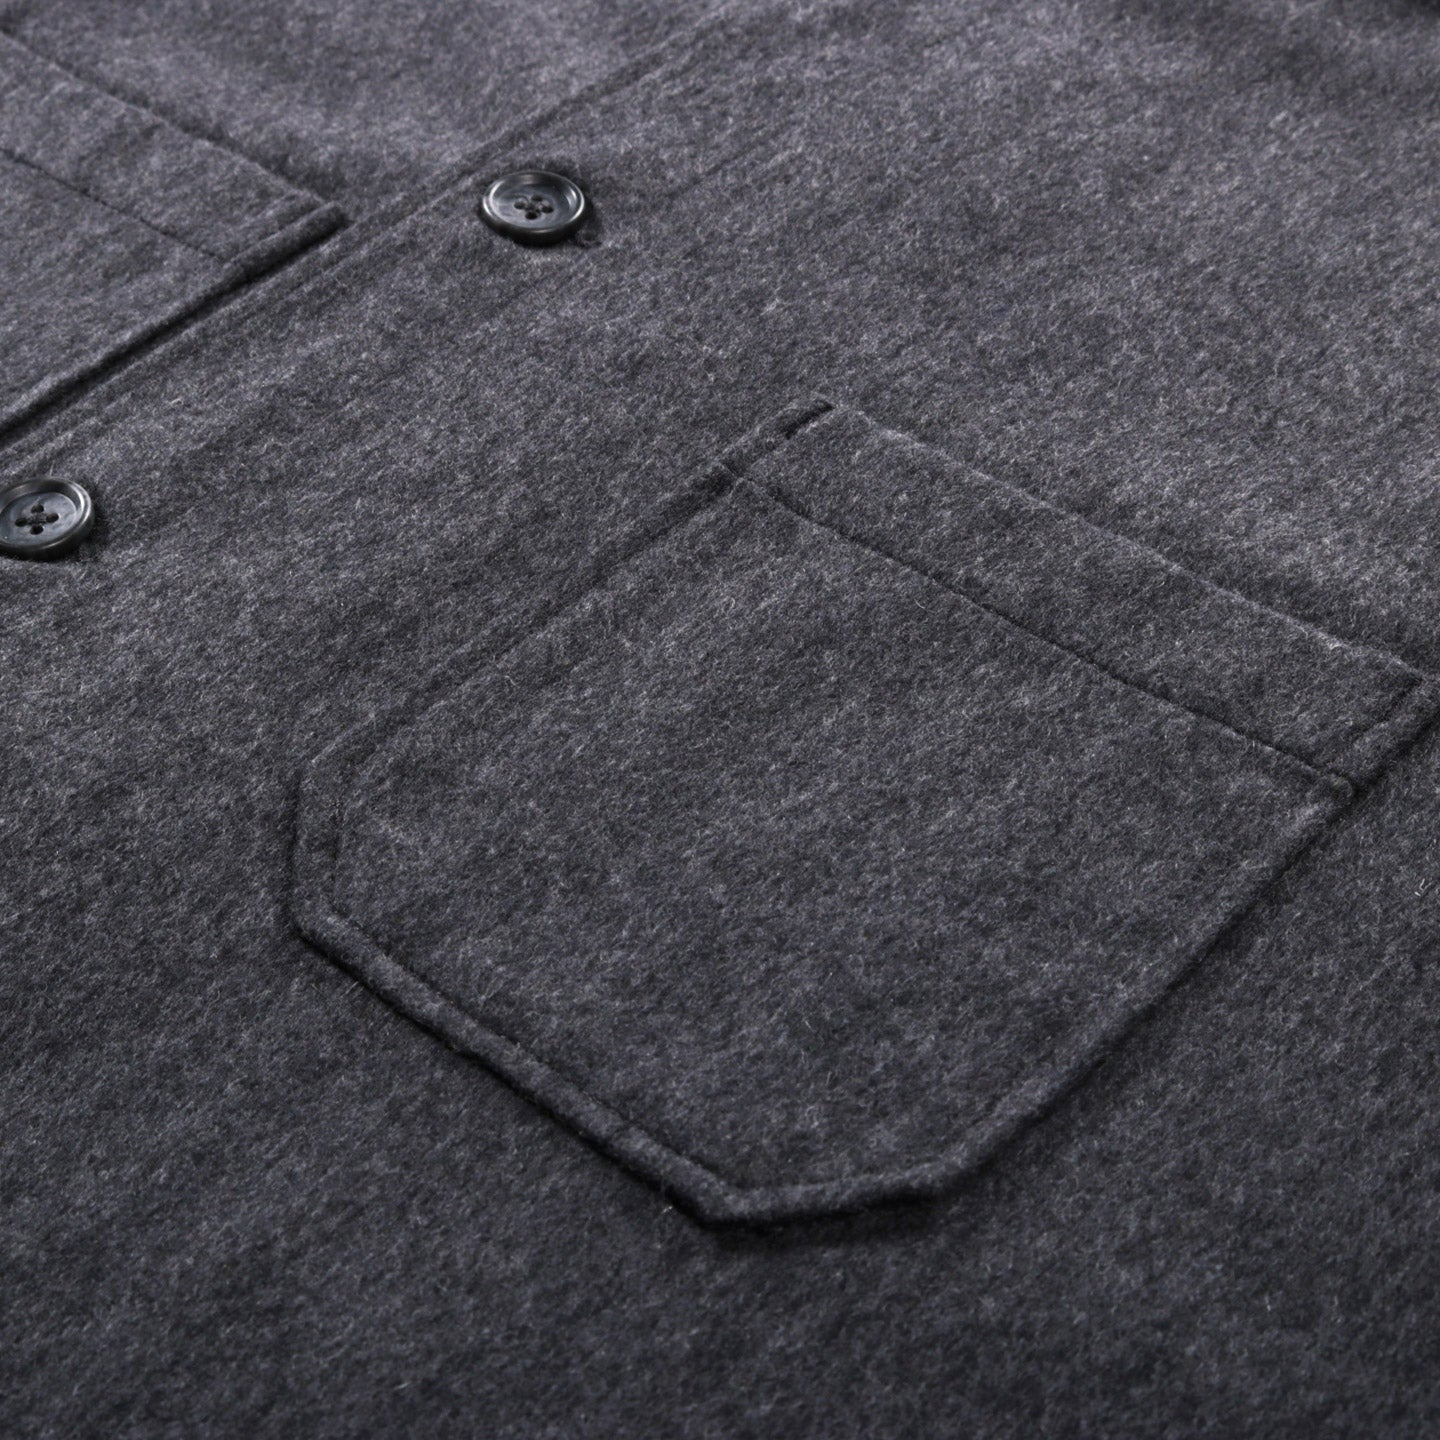 ENGINEERED GARMENTS DAYTON SHIRT GREY WOOL COTTON FLANNEL